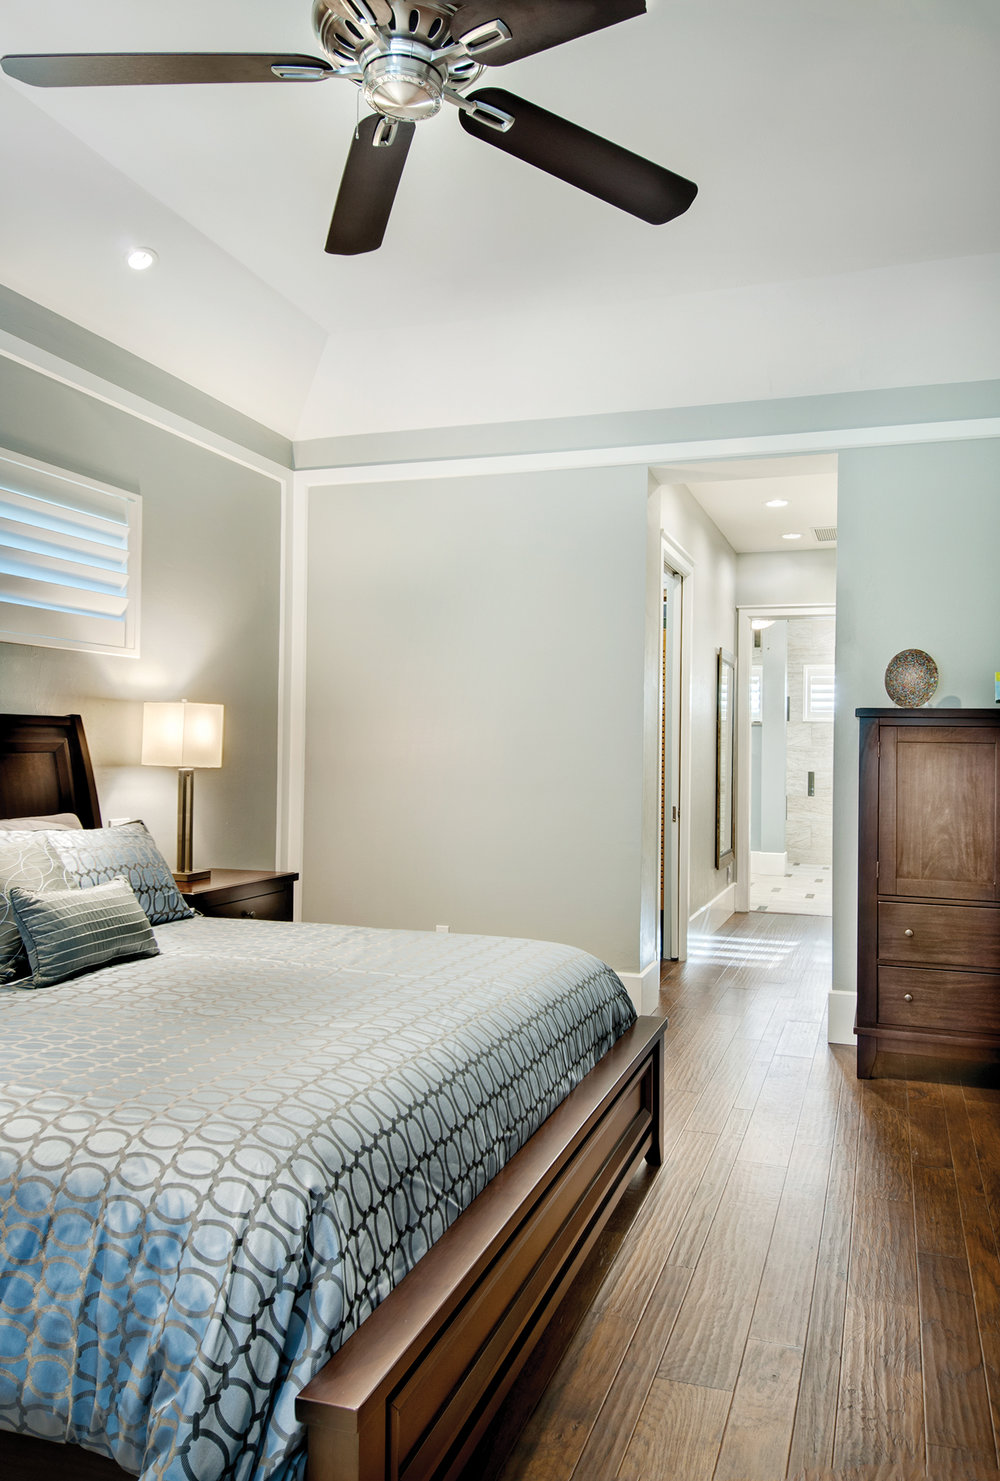 "The master suite is tranquil with shades of soft blue. ""We wanted to keep this room simple and comfortable,"" says Sater. Through the hall, the master bath sports more of the beautifully stained woods found throughout the home."